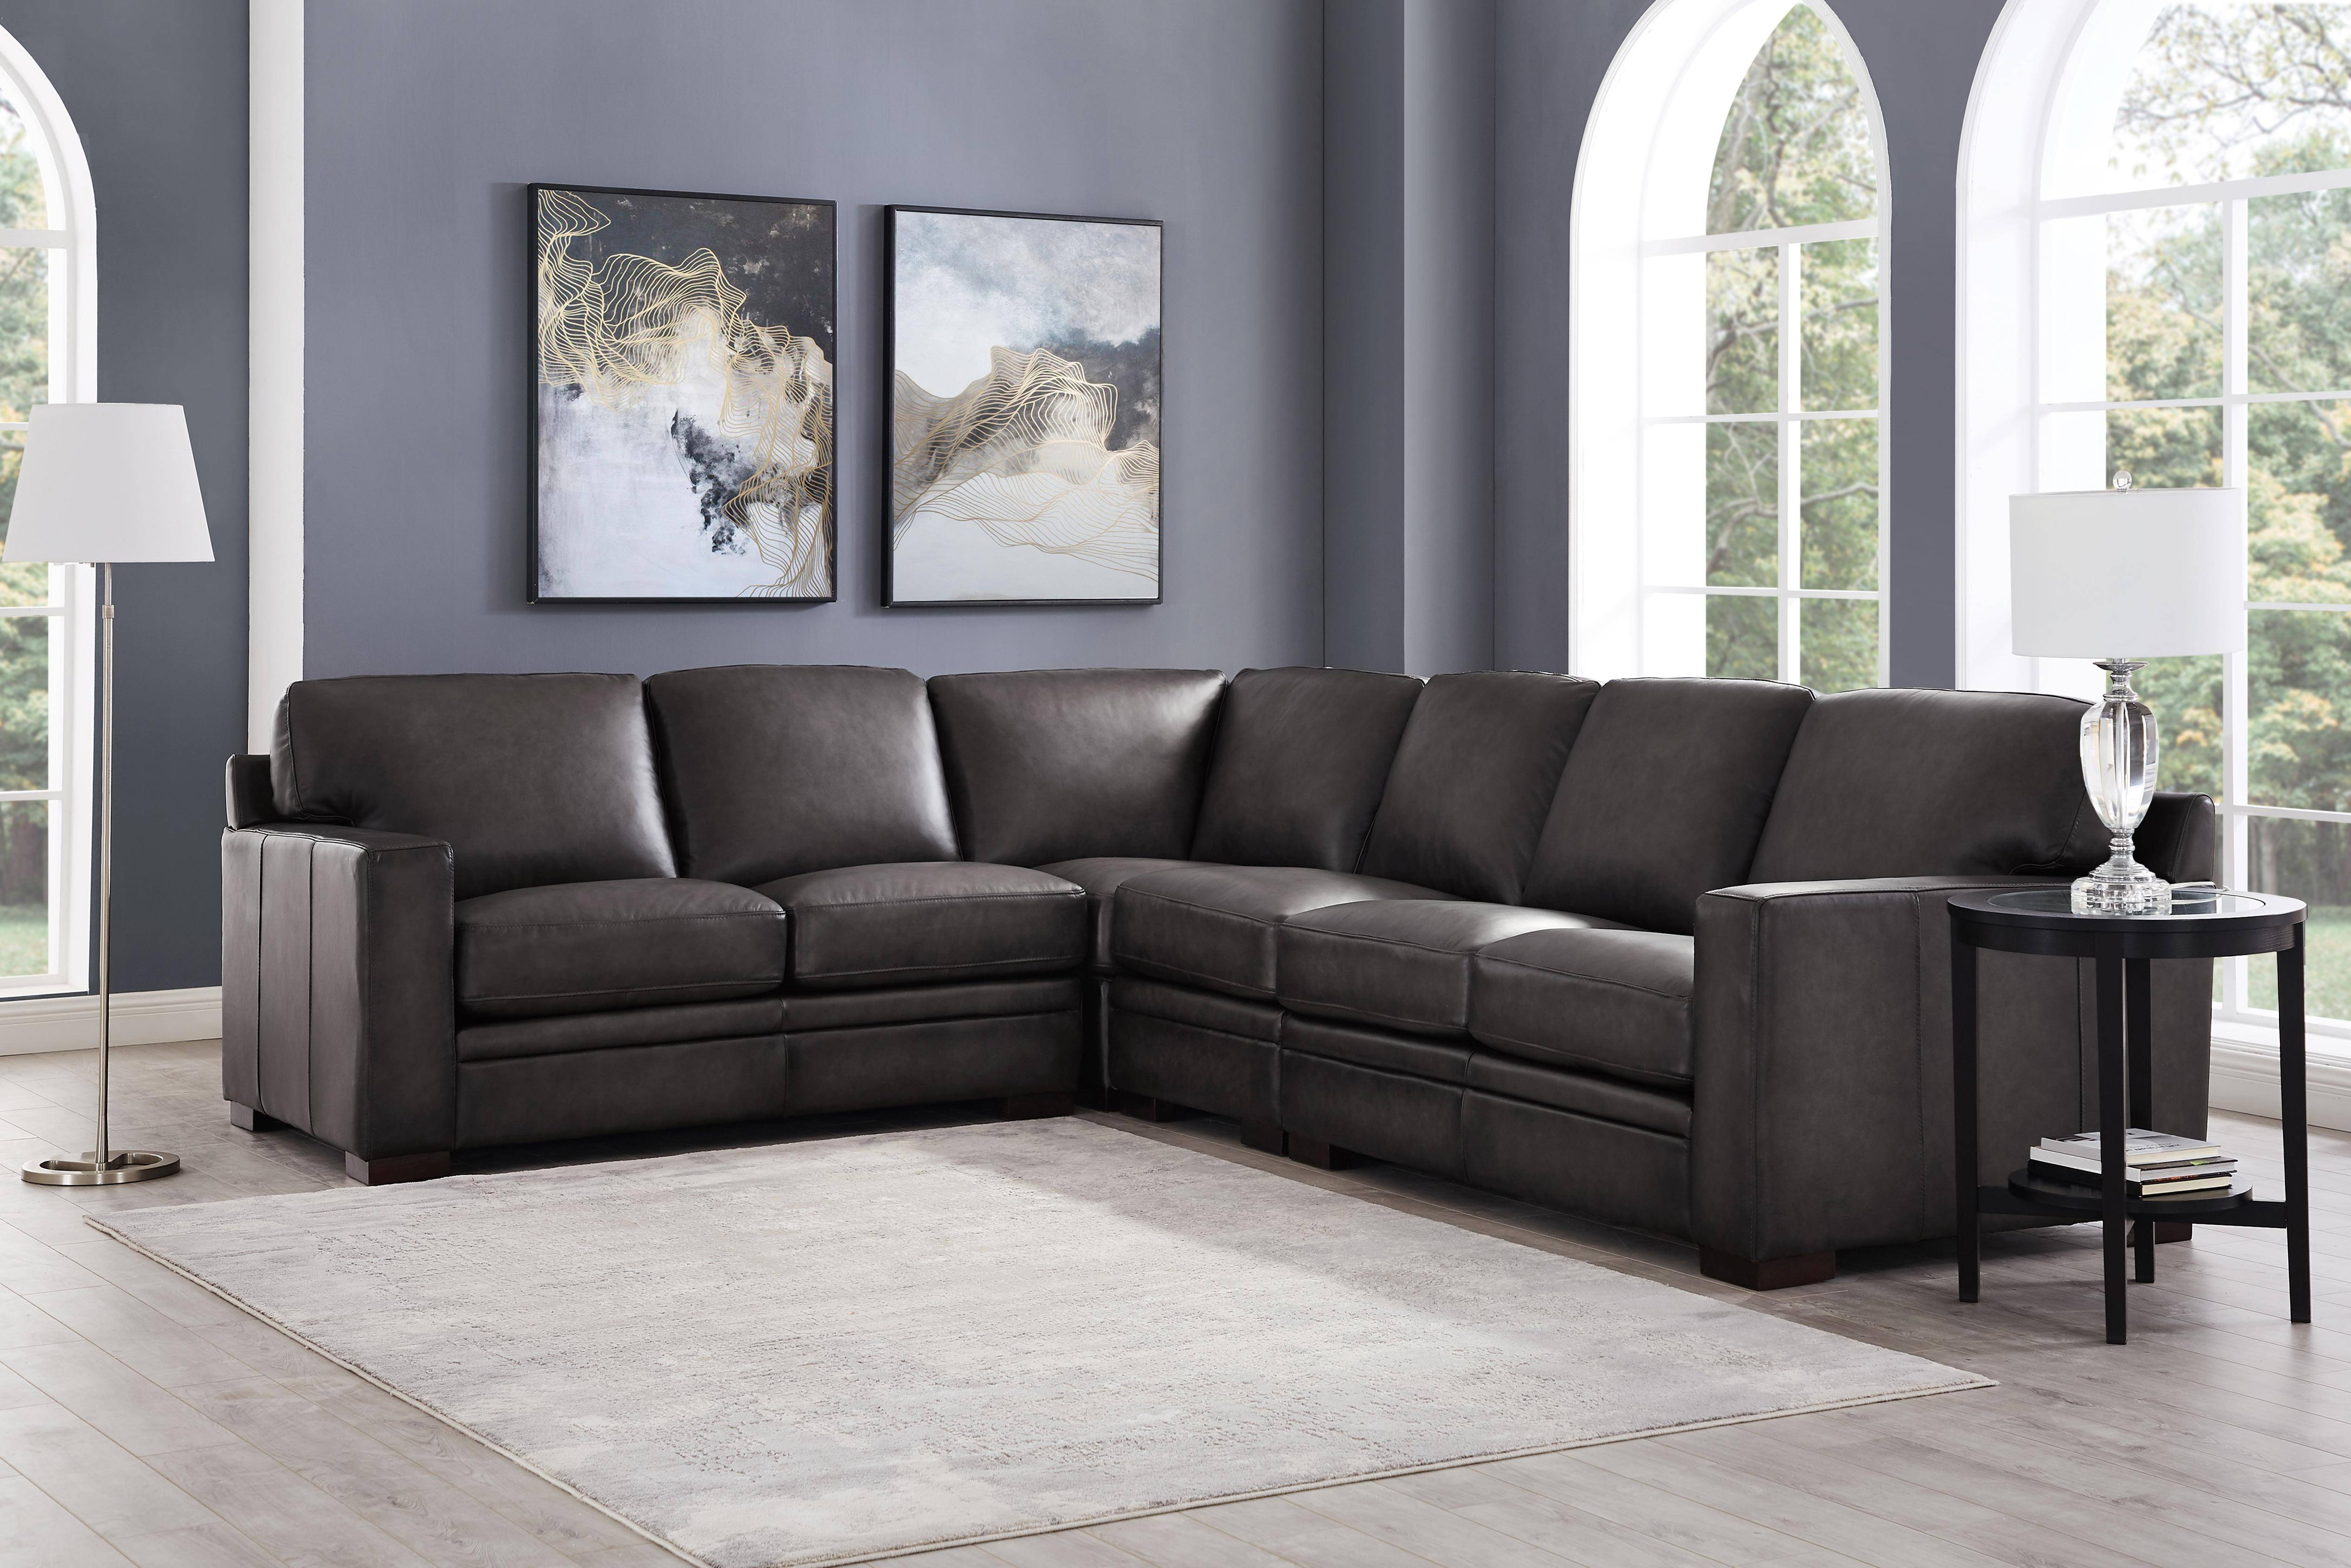 Gray Top Grain Leather Sectional Sofa